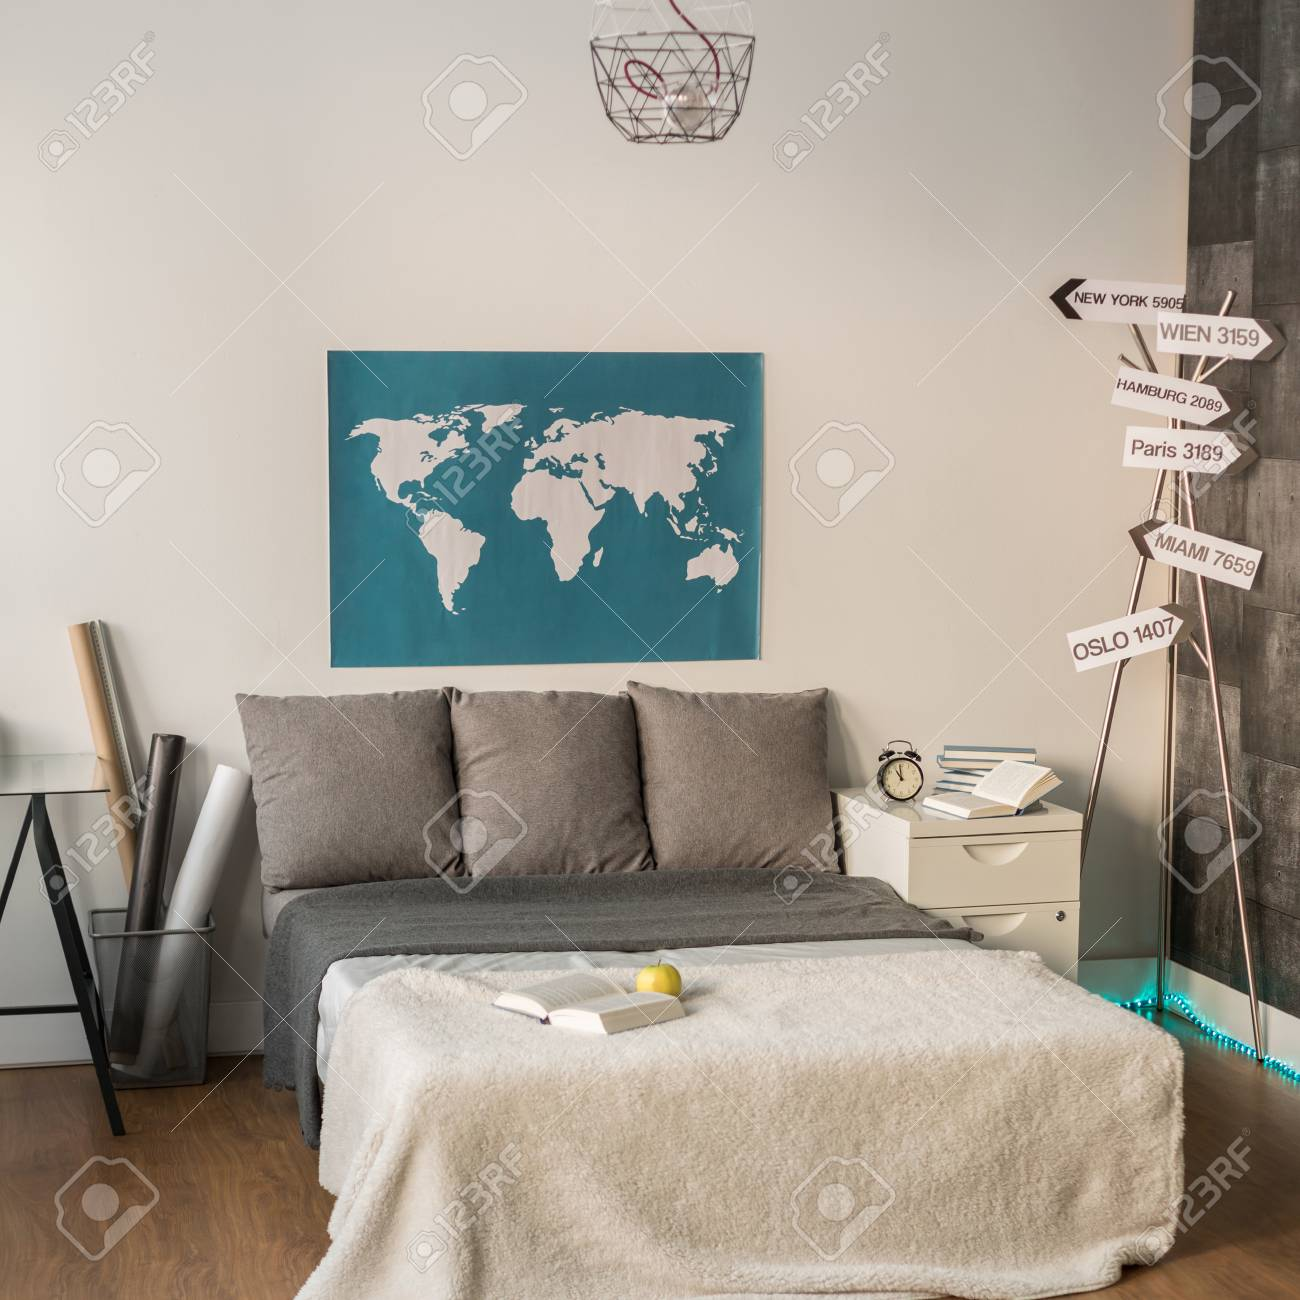 World map in bedroom for couple of travelers stock photo picture stock photo world map in bedroom for couple of travelers gumiabroncs Images